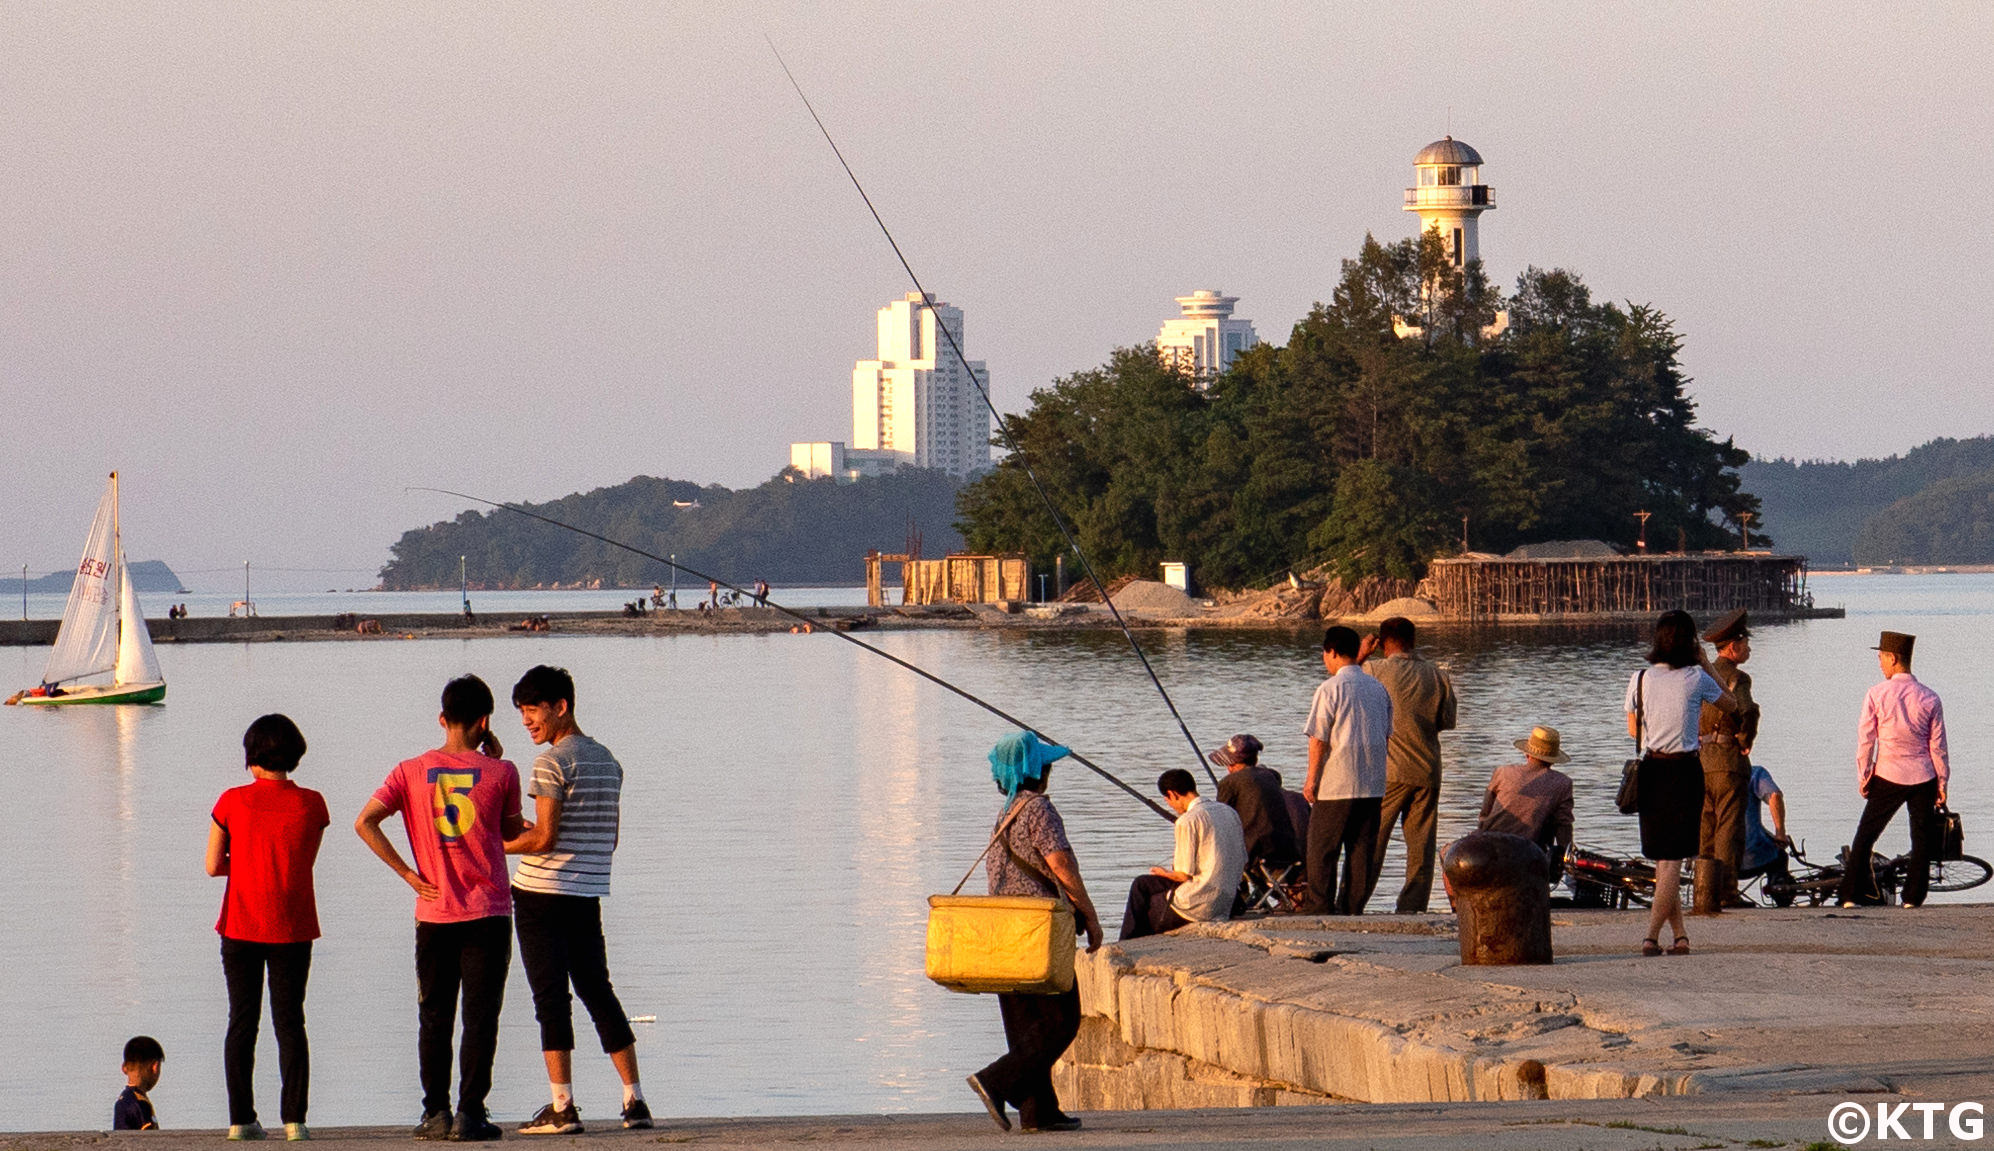 Jangdok Islet in Wonsan in North Korea (DPRK). Trip to the east coast of North Korea with KTG tours